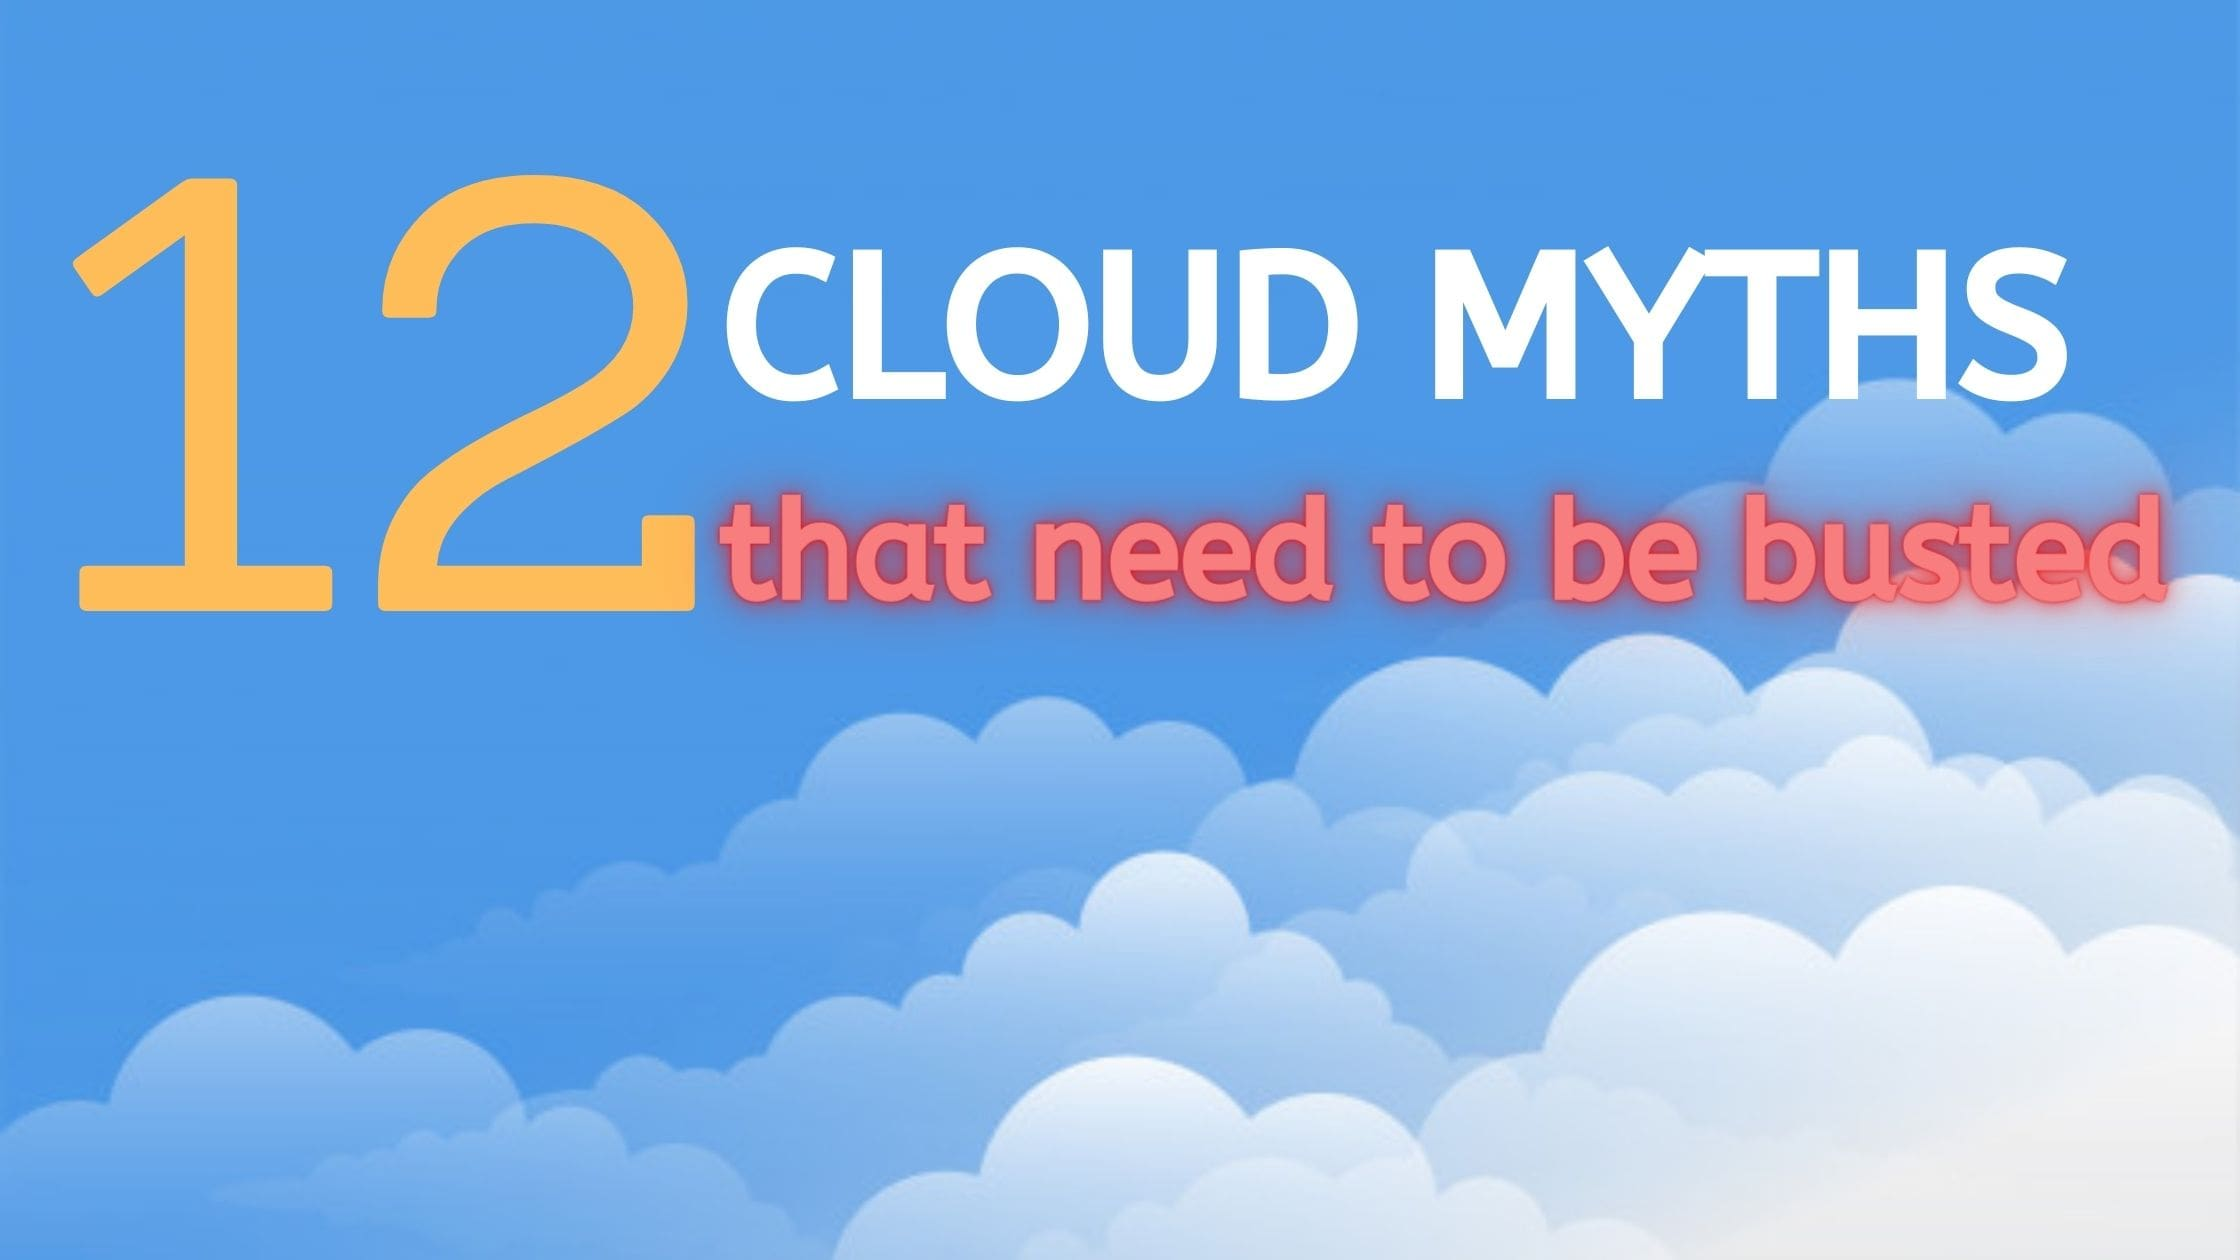 12 Cloud myths that need to be busted